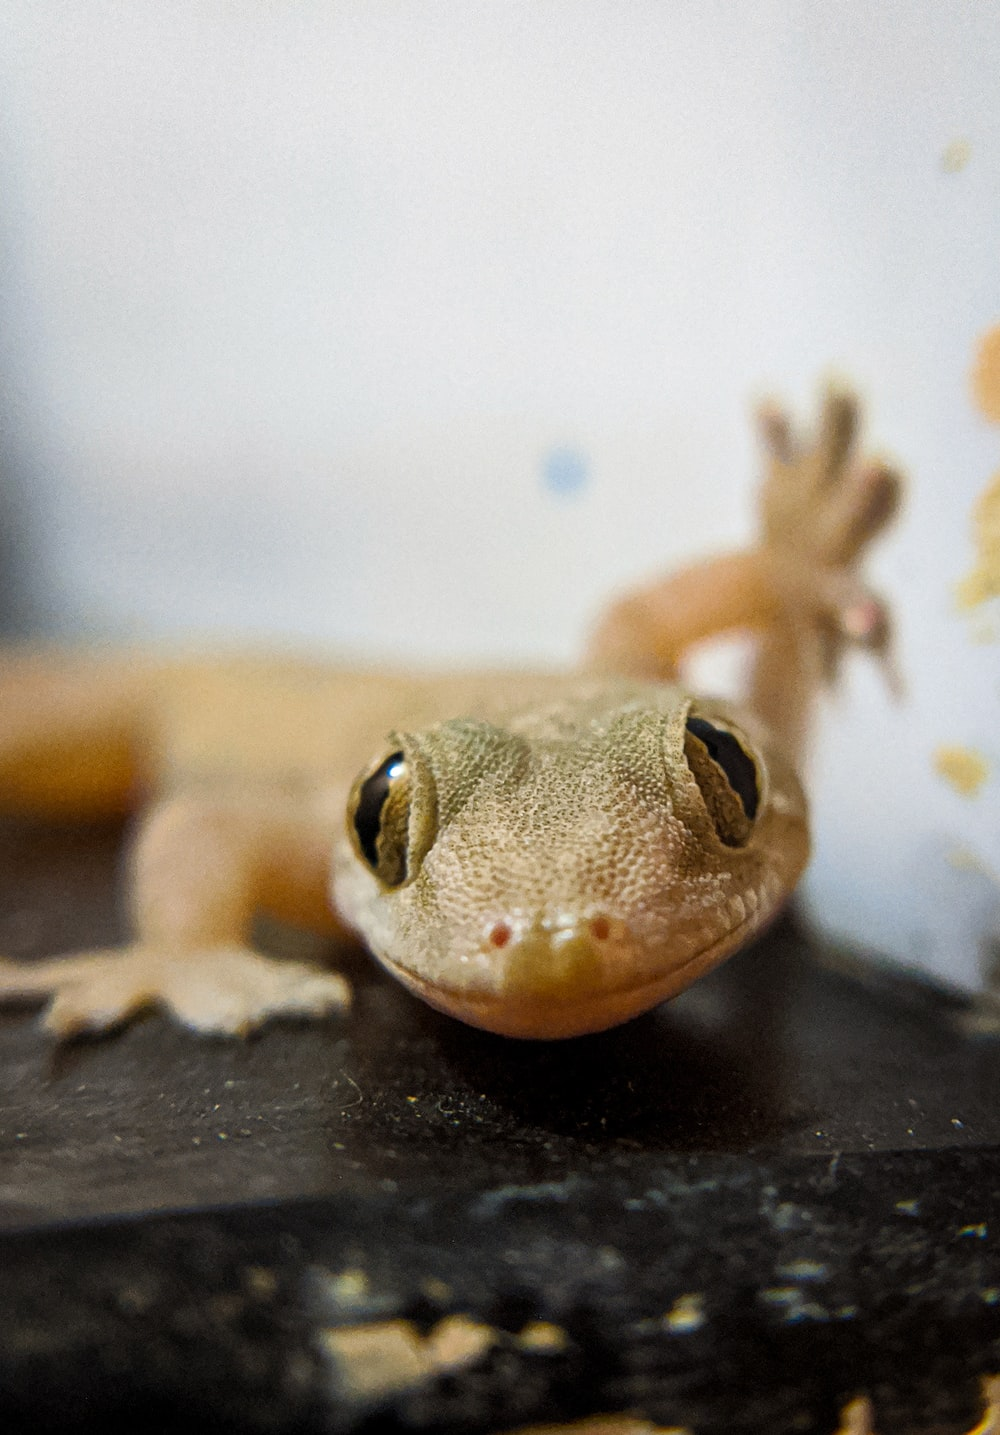 macro photography of yellow gecko